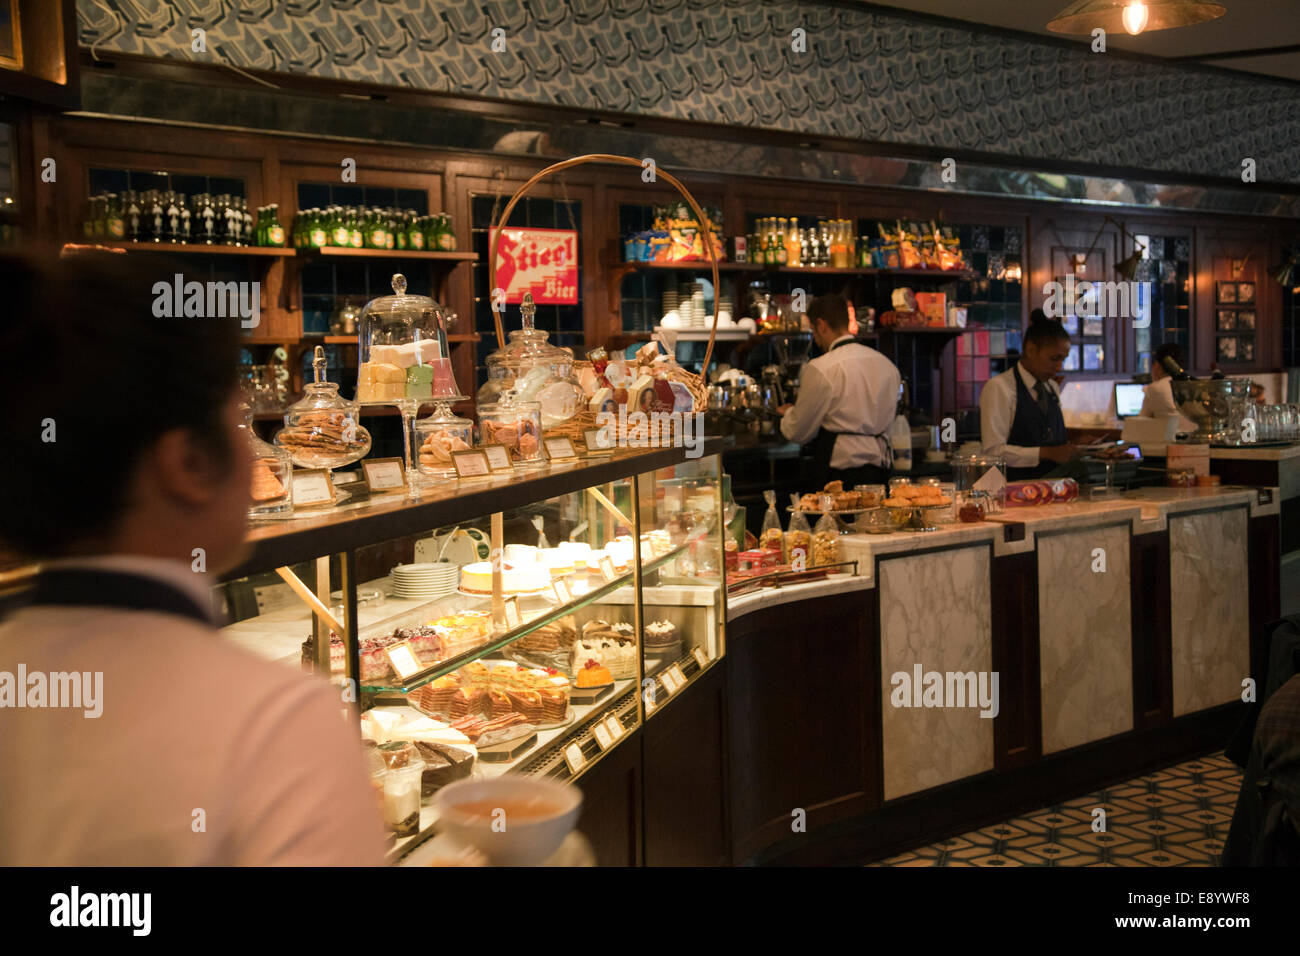 Cafe in the vieux port terra vecchia bastia corsica france stock - The Delaunay Cafe On The Aldwych In London Uk Stock Image